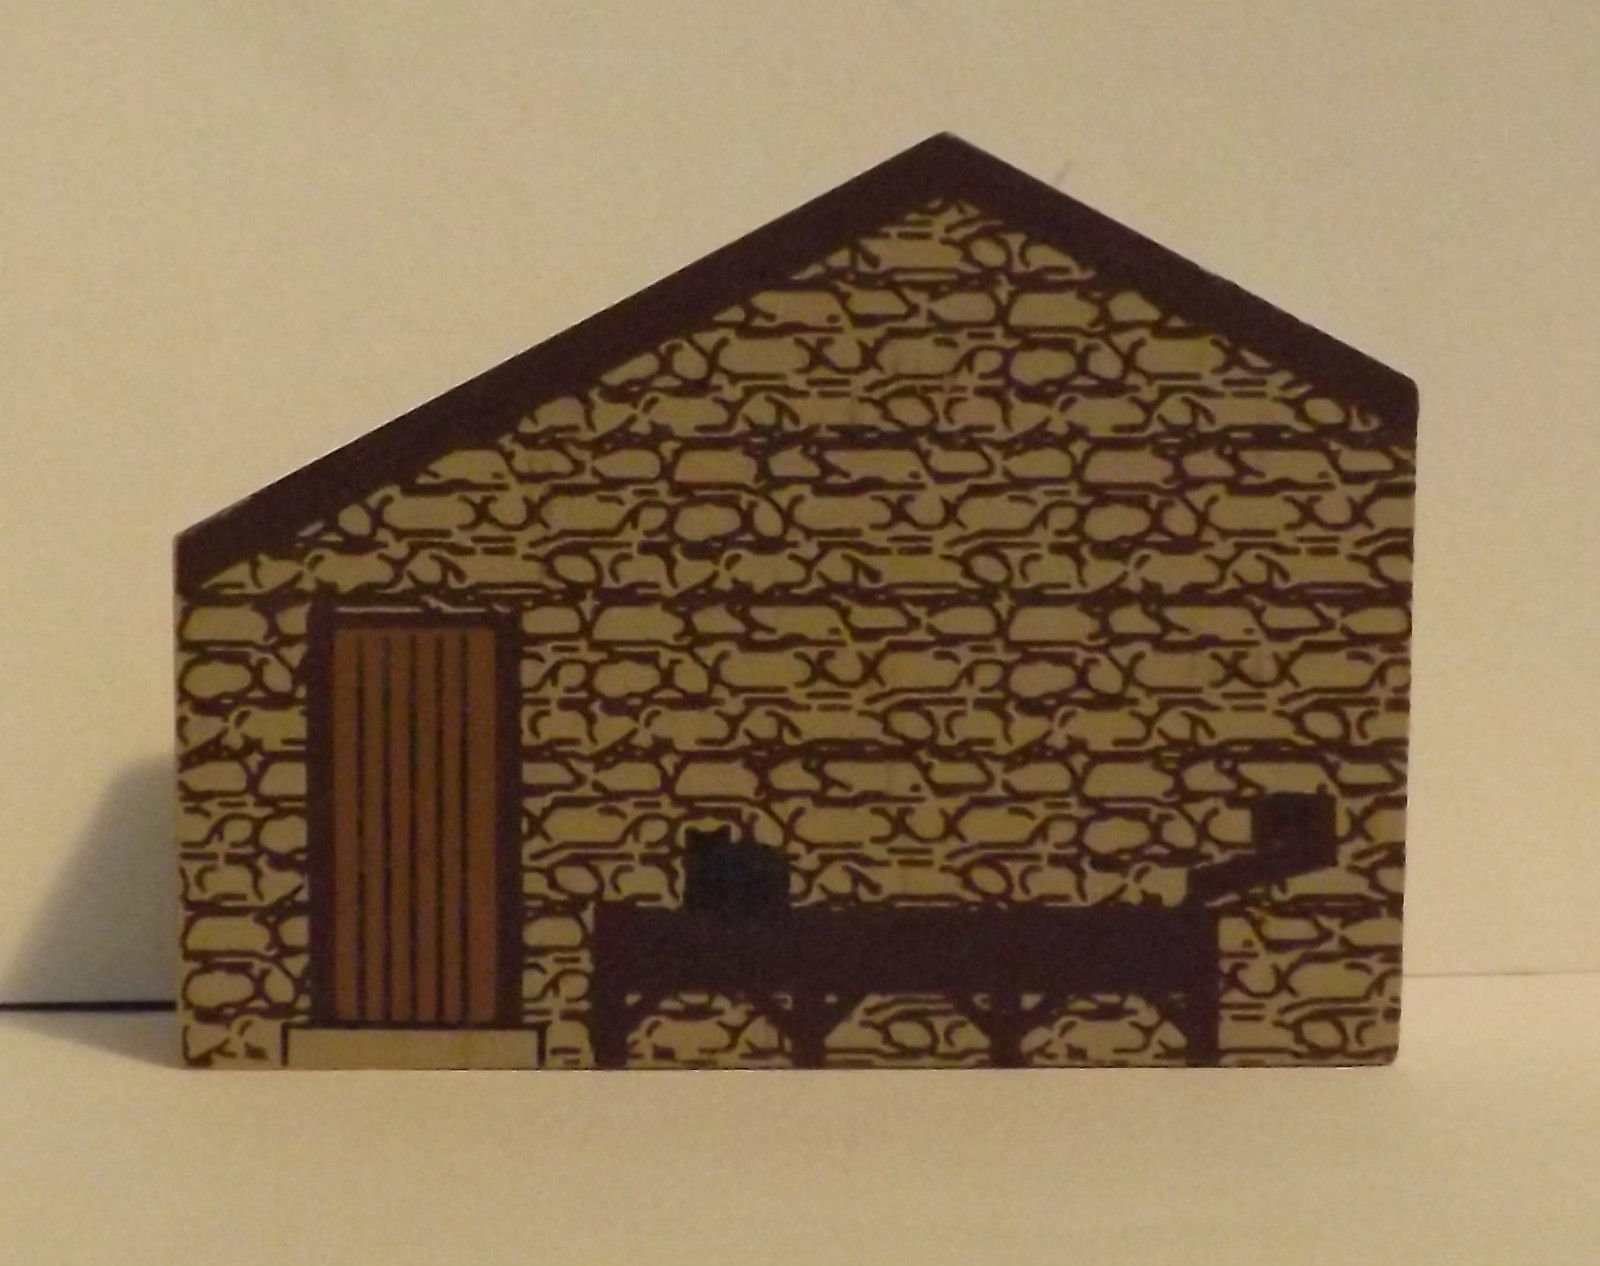 Cats Meow Accessory Building Double Sided